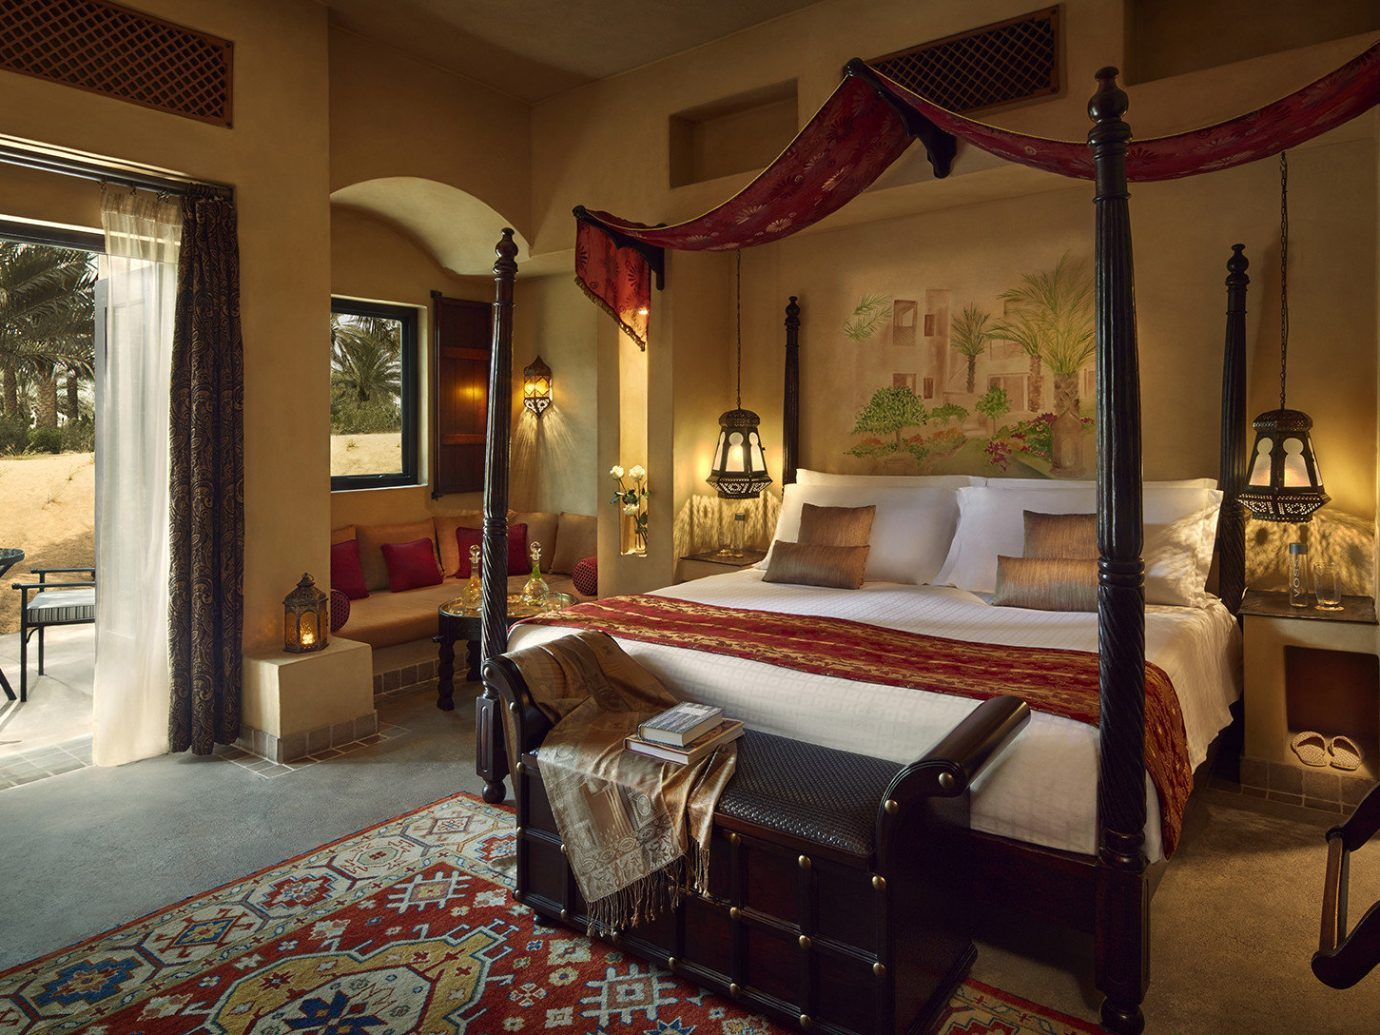 Dubai Hotels Luxury Travel Middle East indoor room floor wall Living Suite interior design Bedroom real estate estate hotel ceiling furniture bed hacienda decorated several